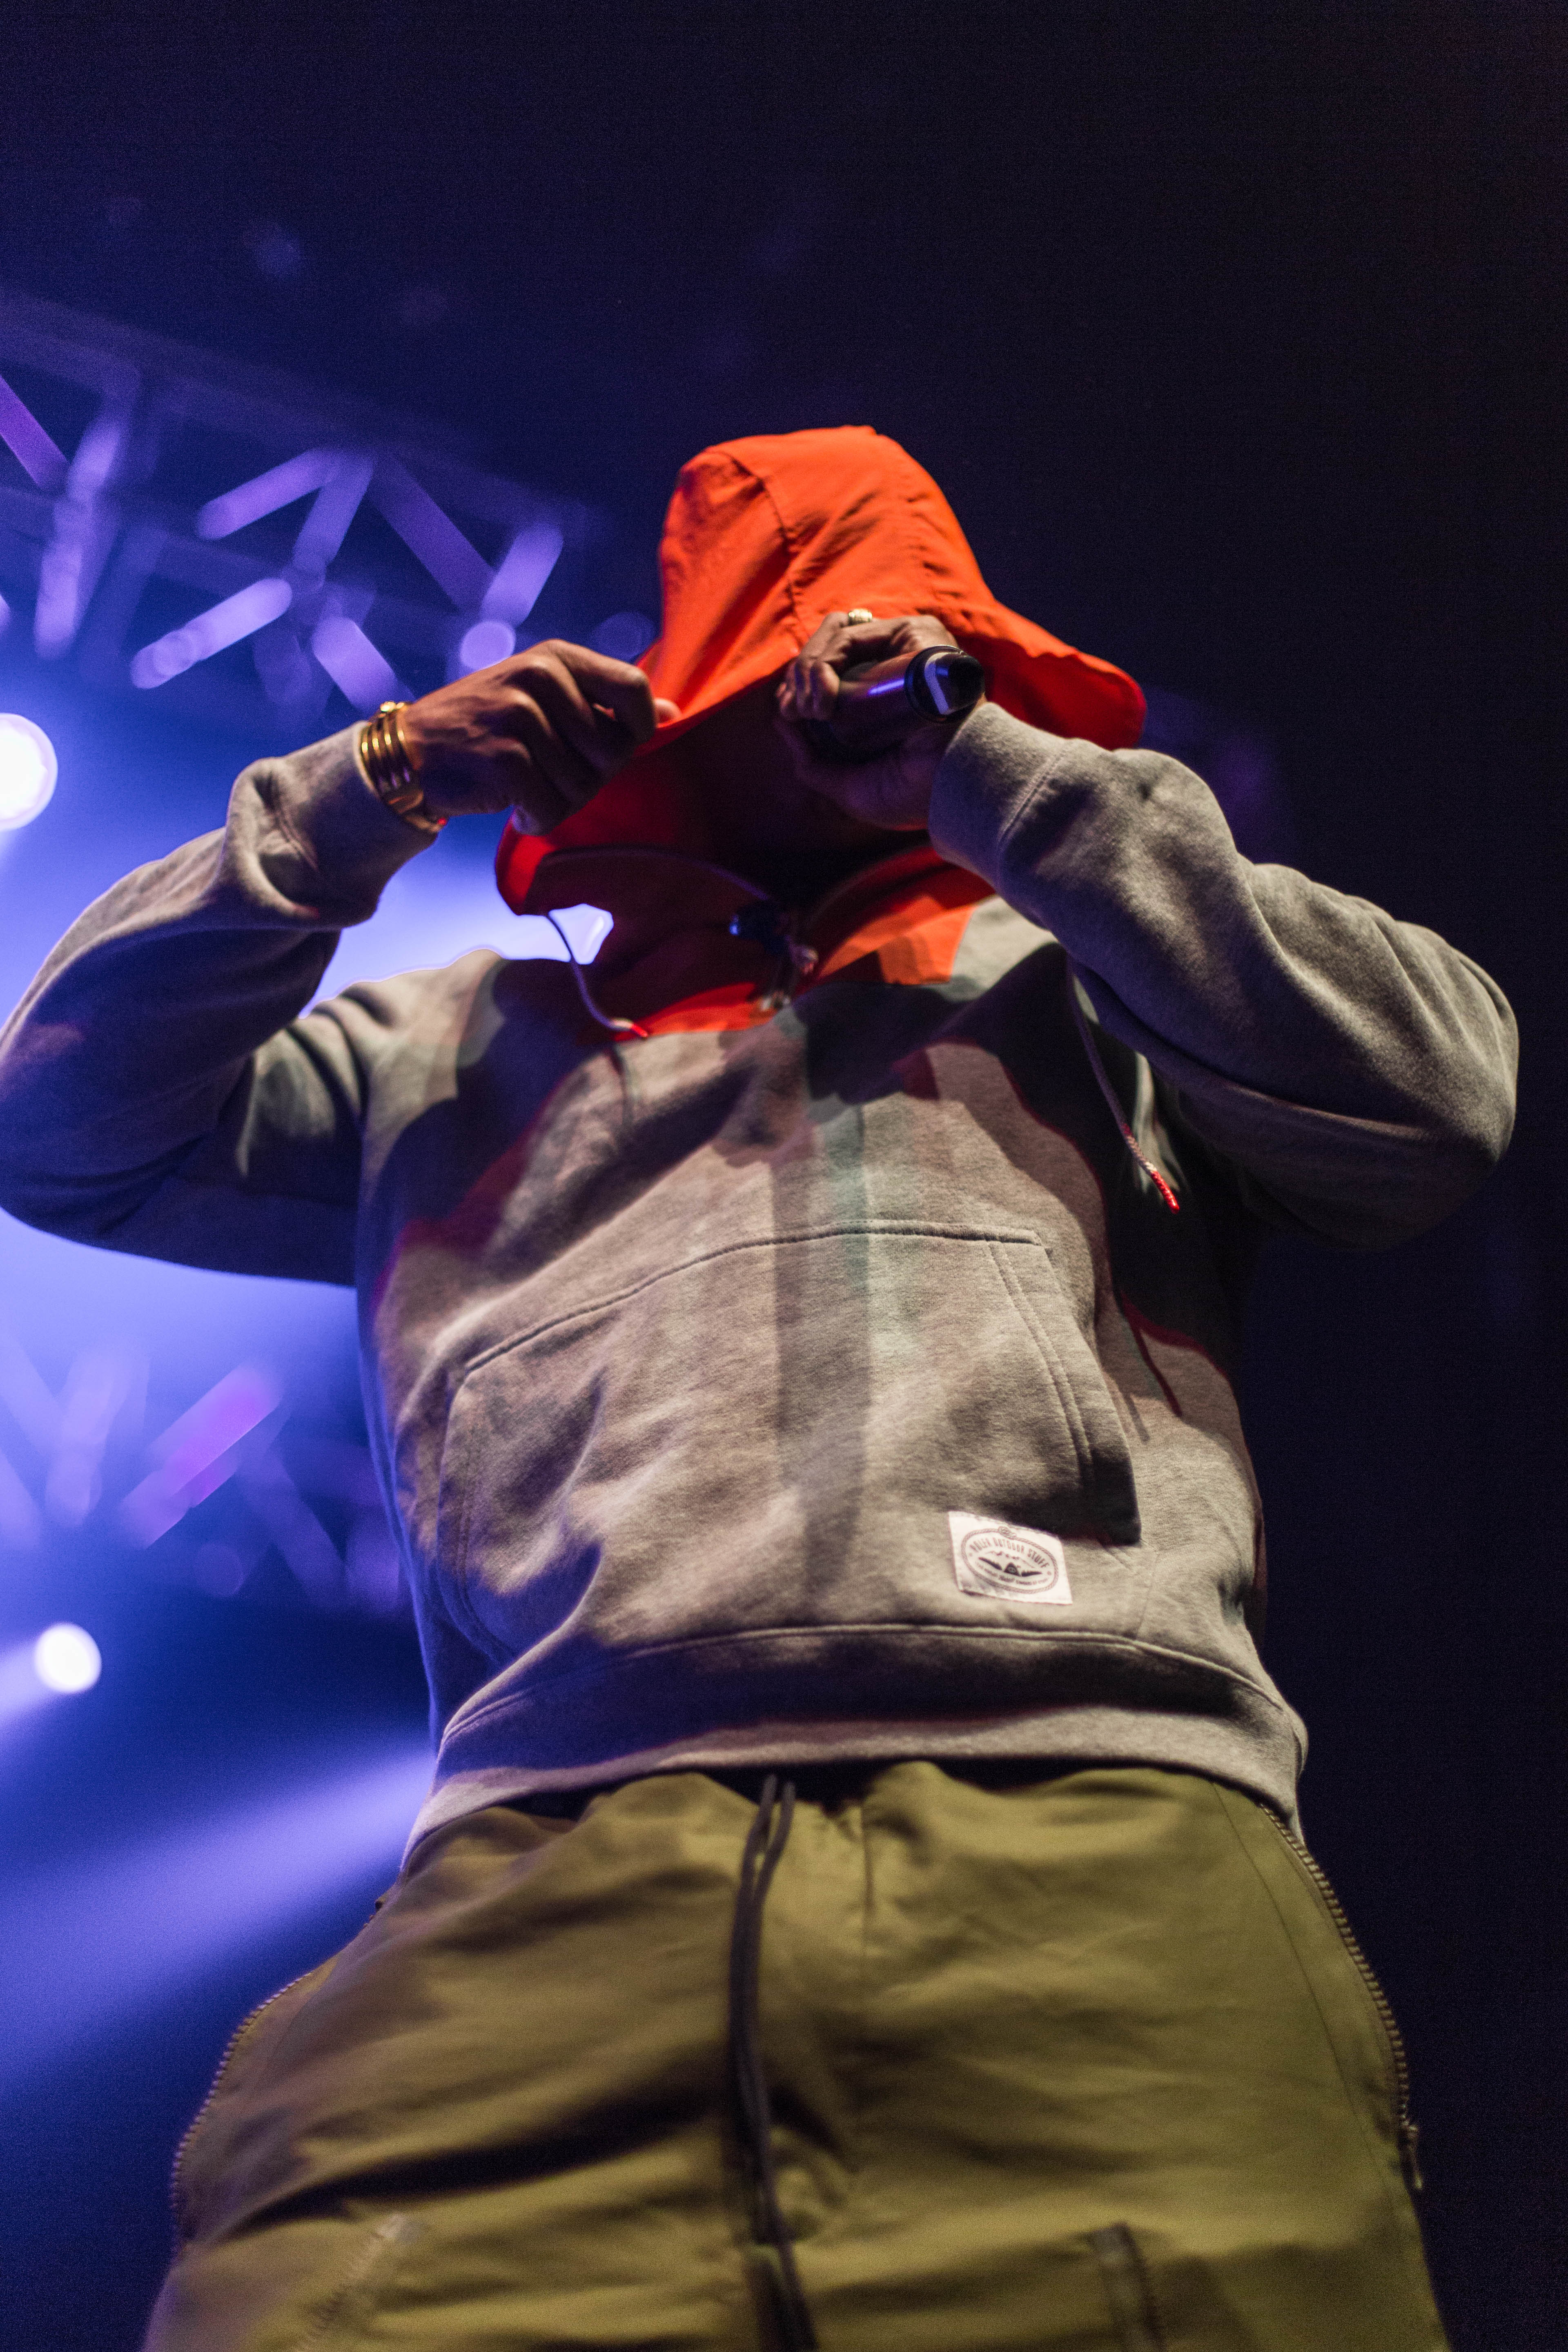 Ja Rule performing on stage with his hood over his head.